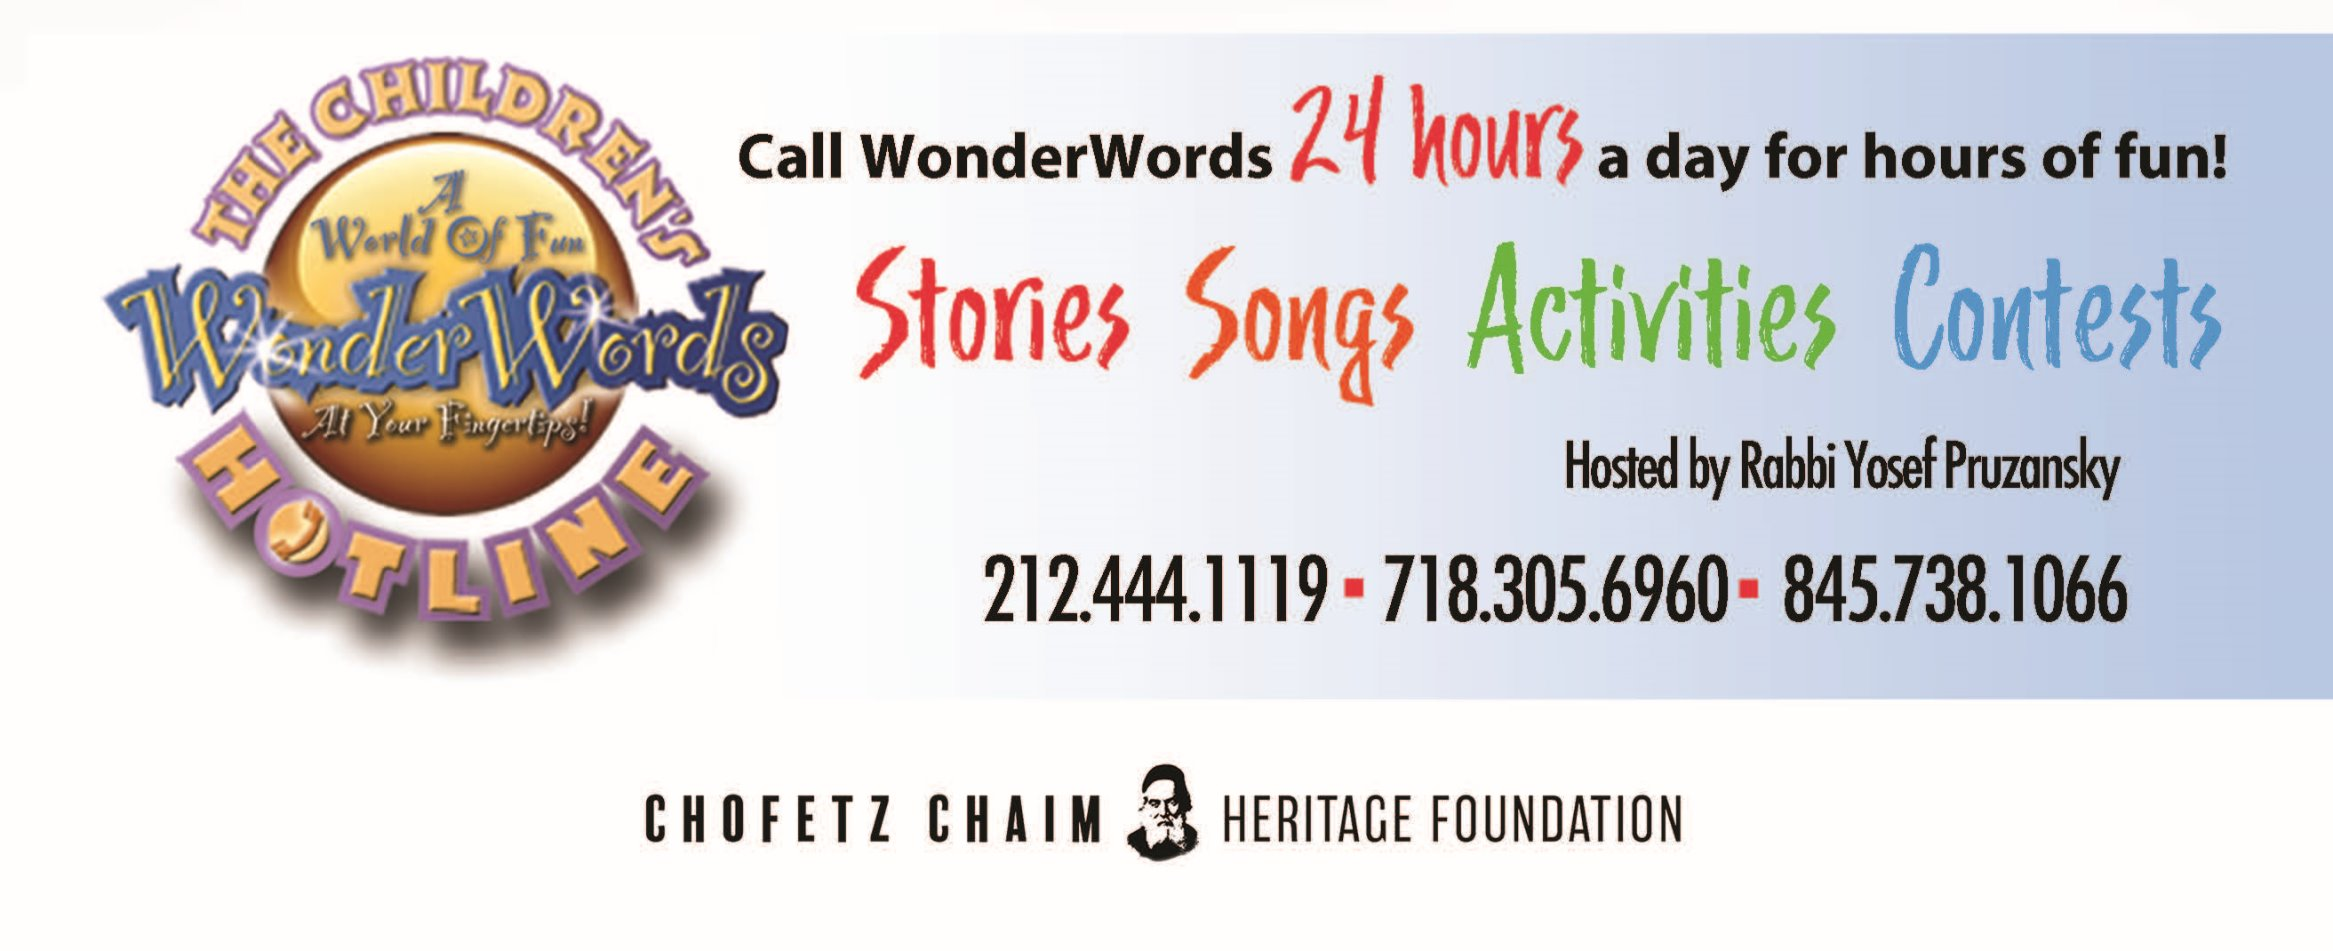 WonderWords Hotline